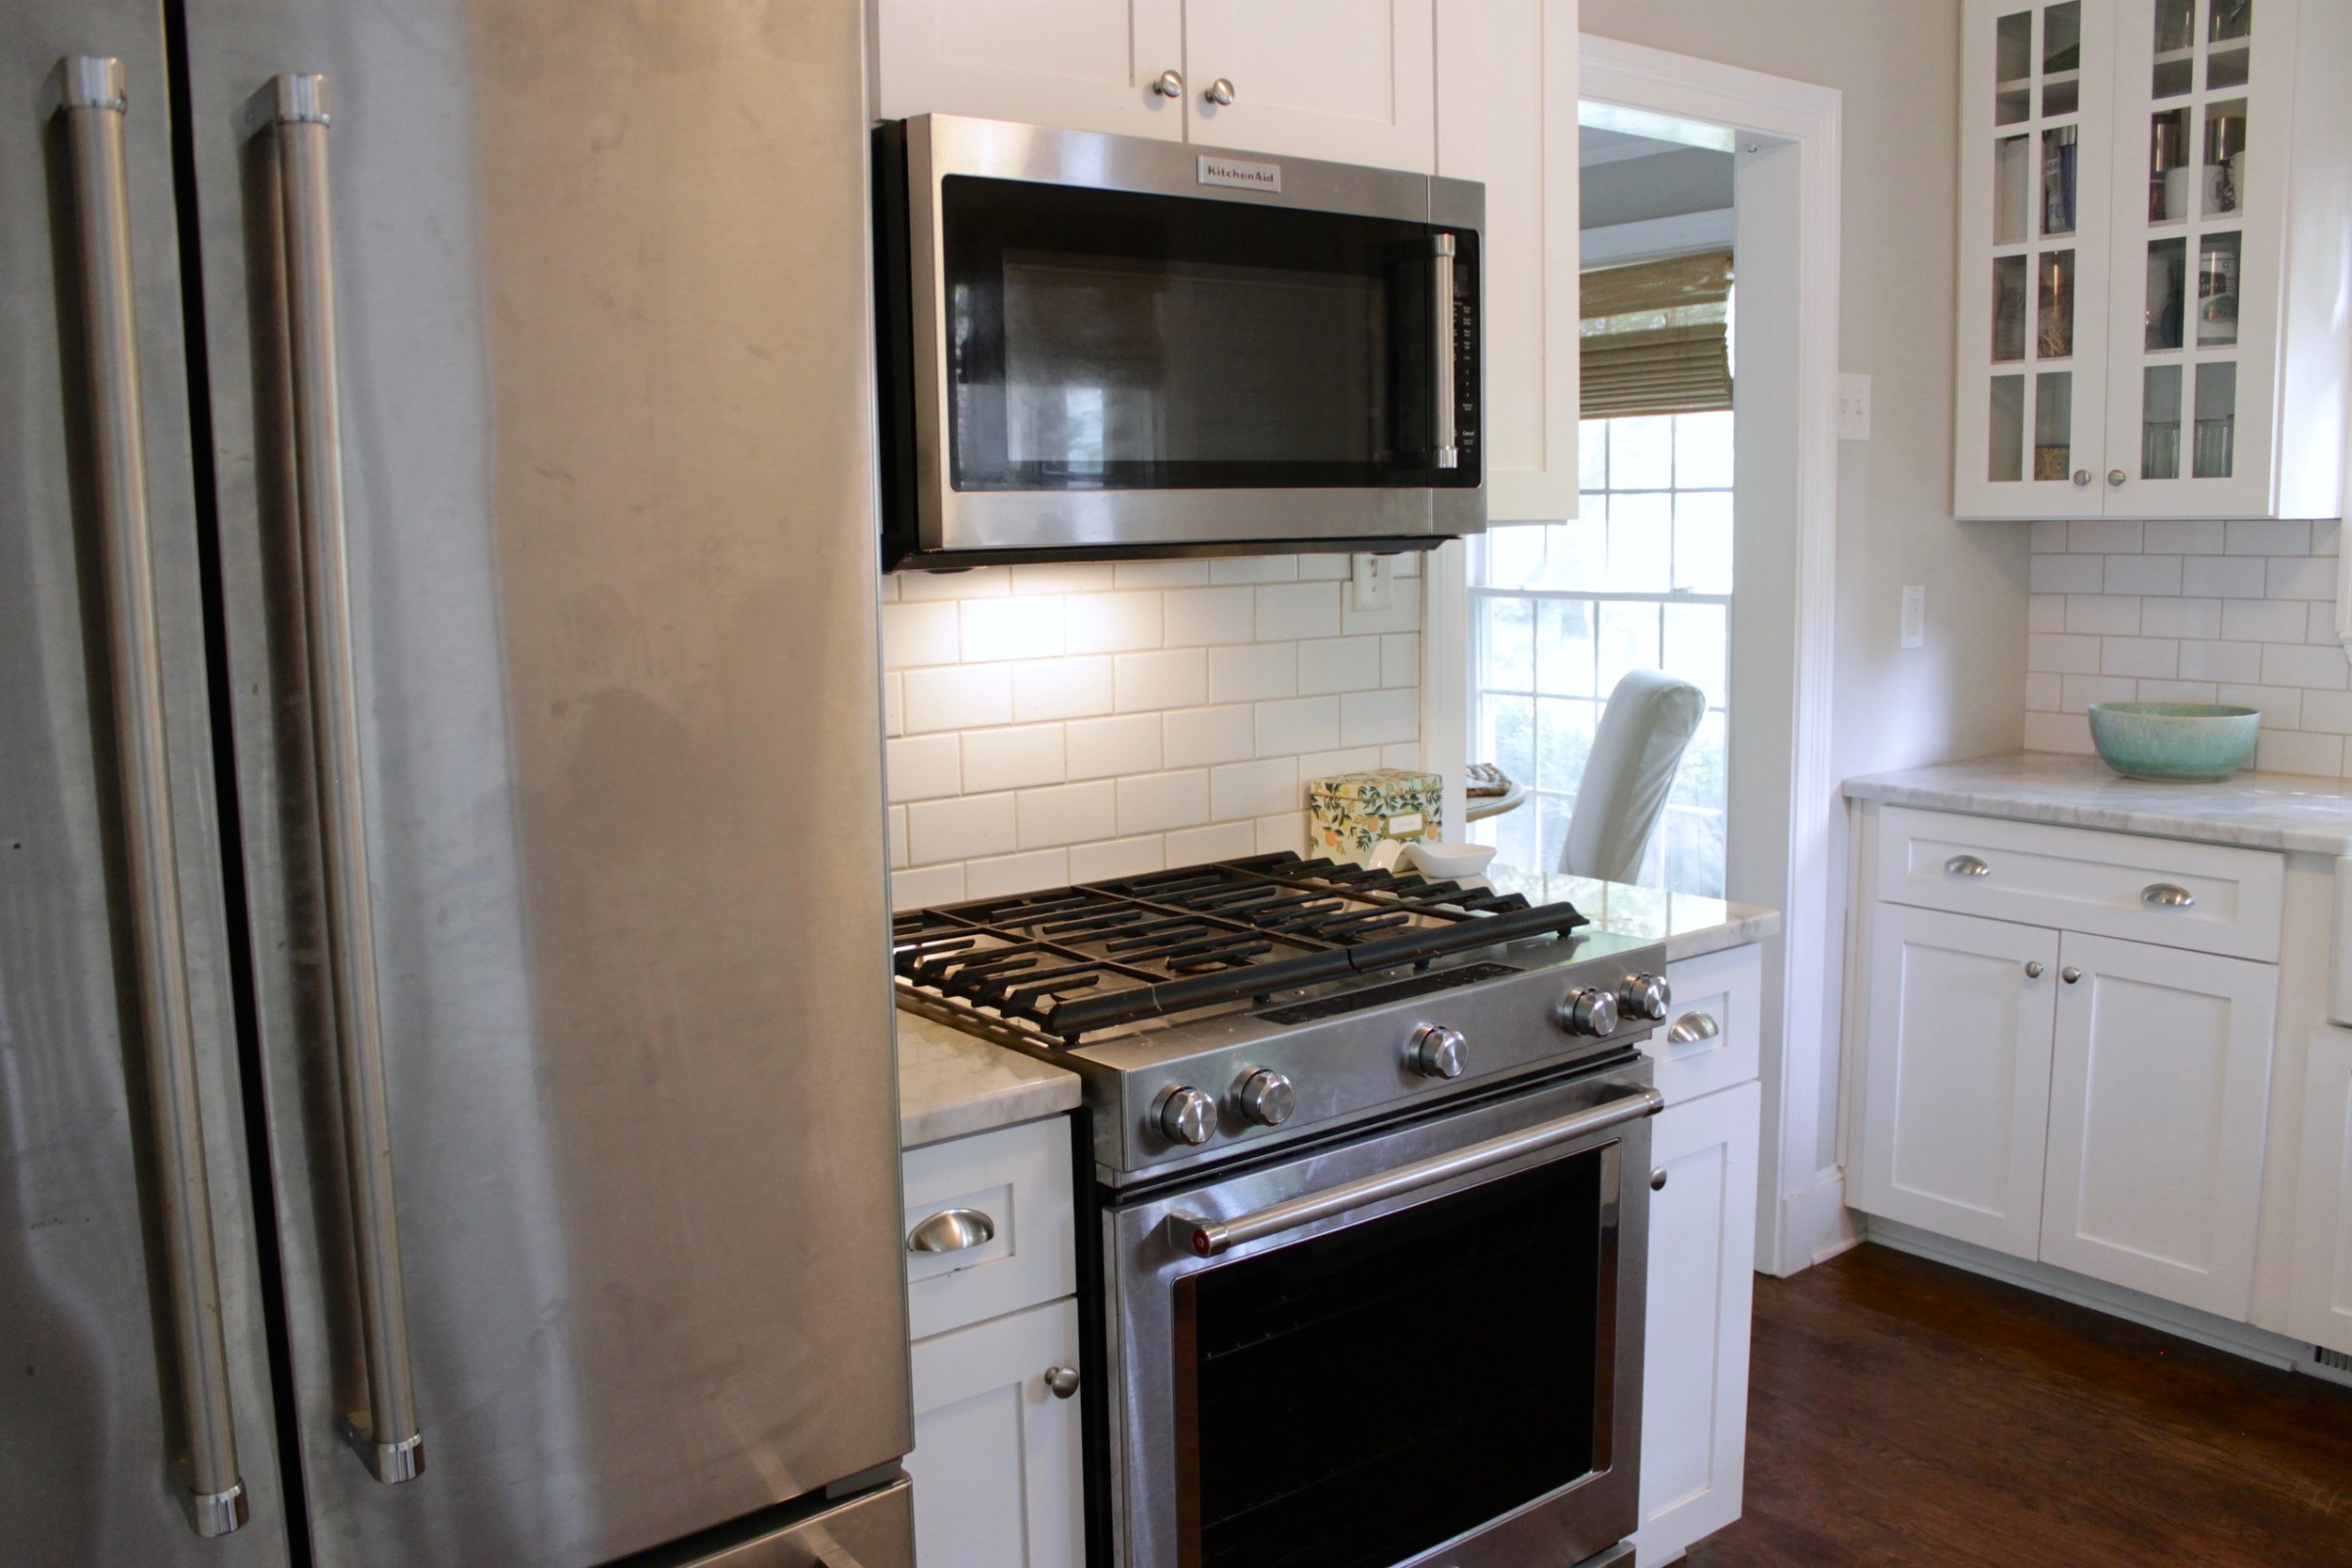 Prime Design Memphis, LLC - Small White Kitchen, Marble Countertops, and Subway Tile Backlash